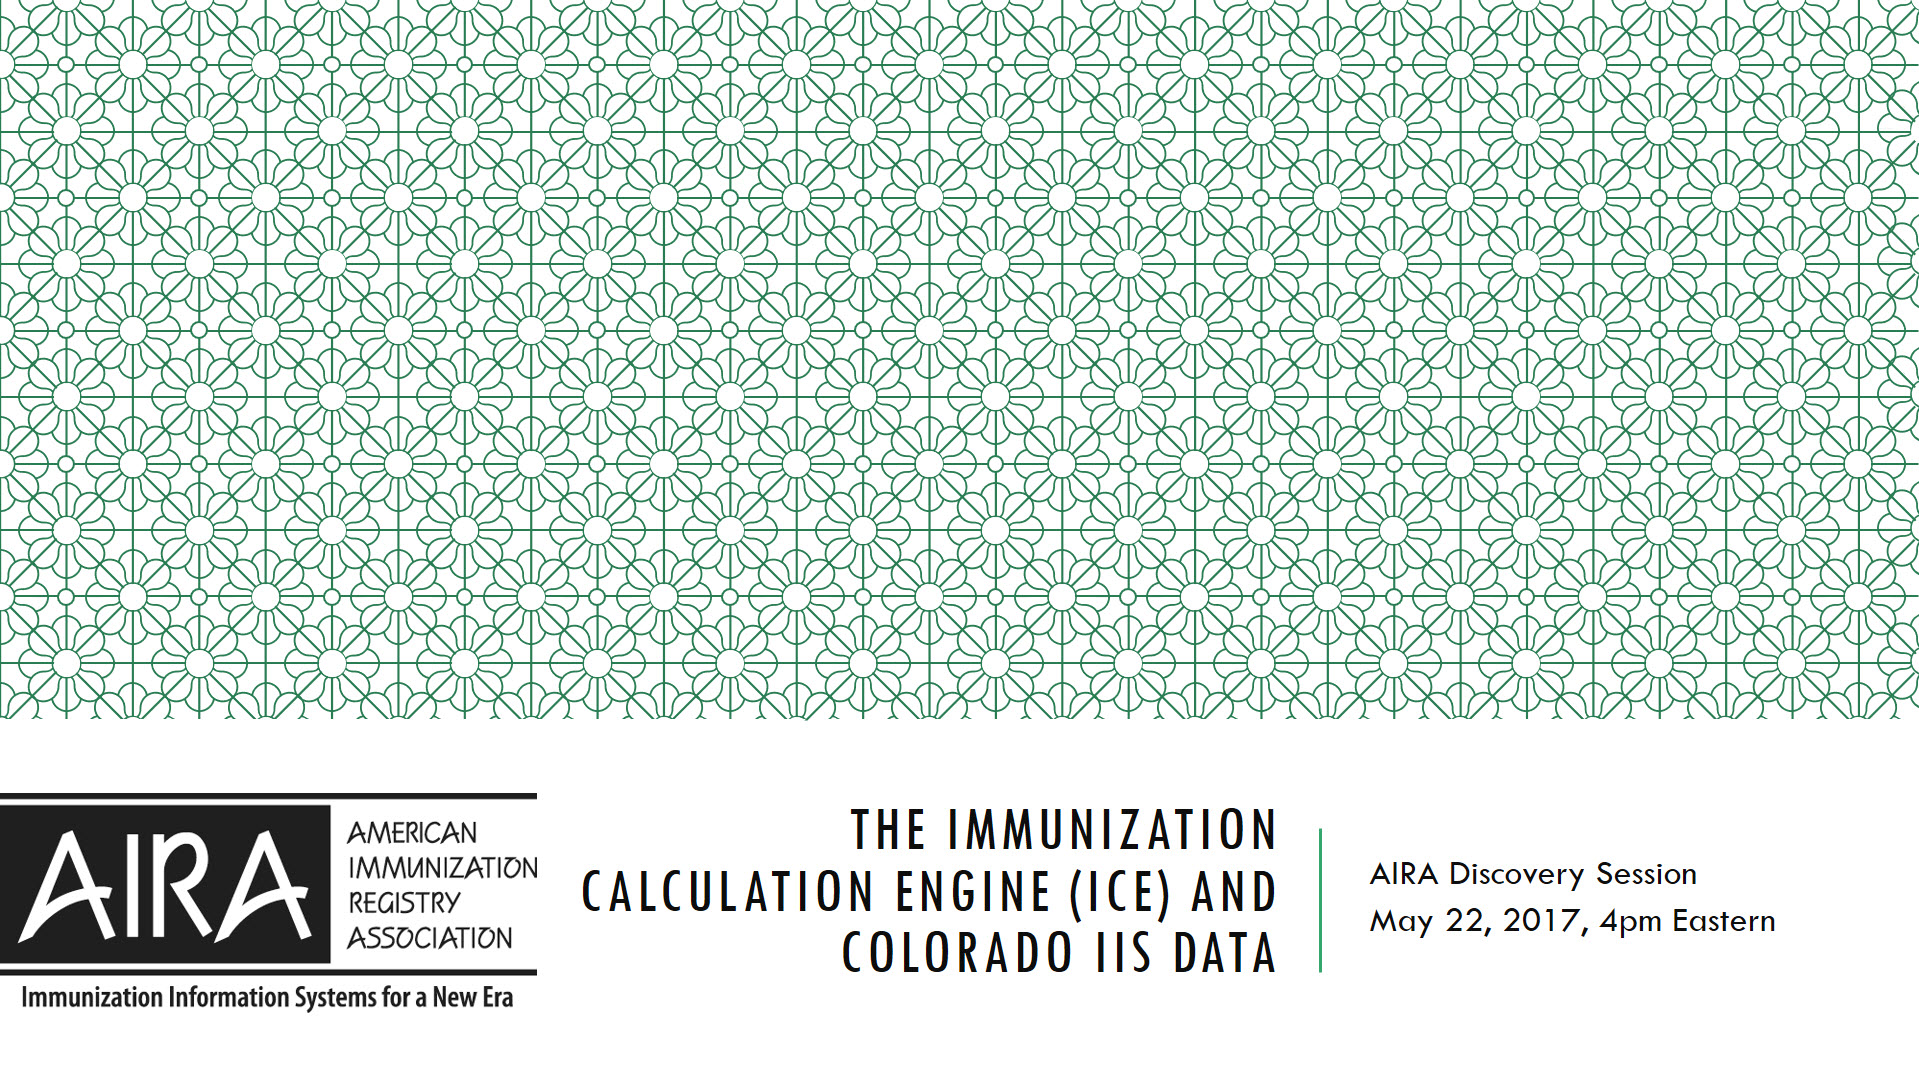 AIRA Discovery Session: The Immunization Calculation Engine (ICE) and IIS Data